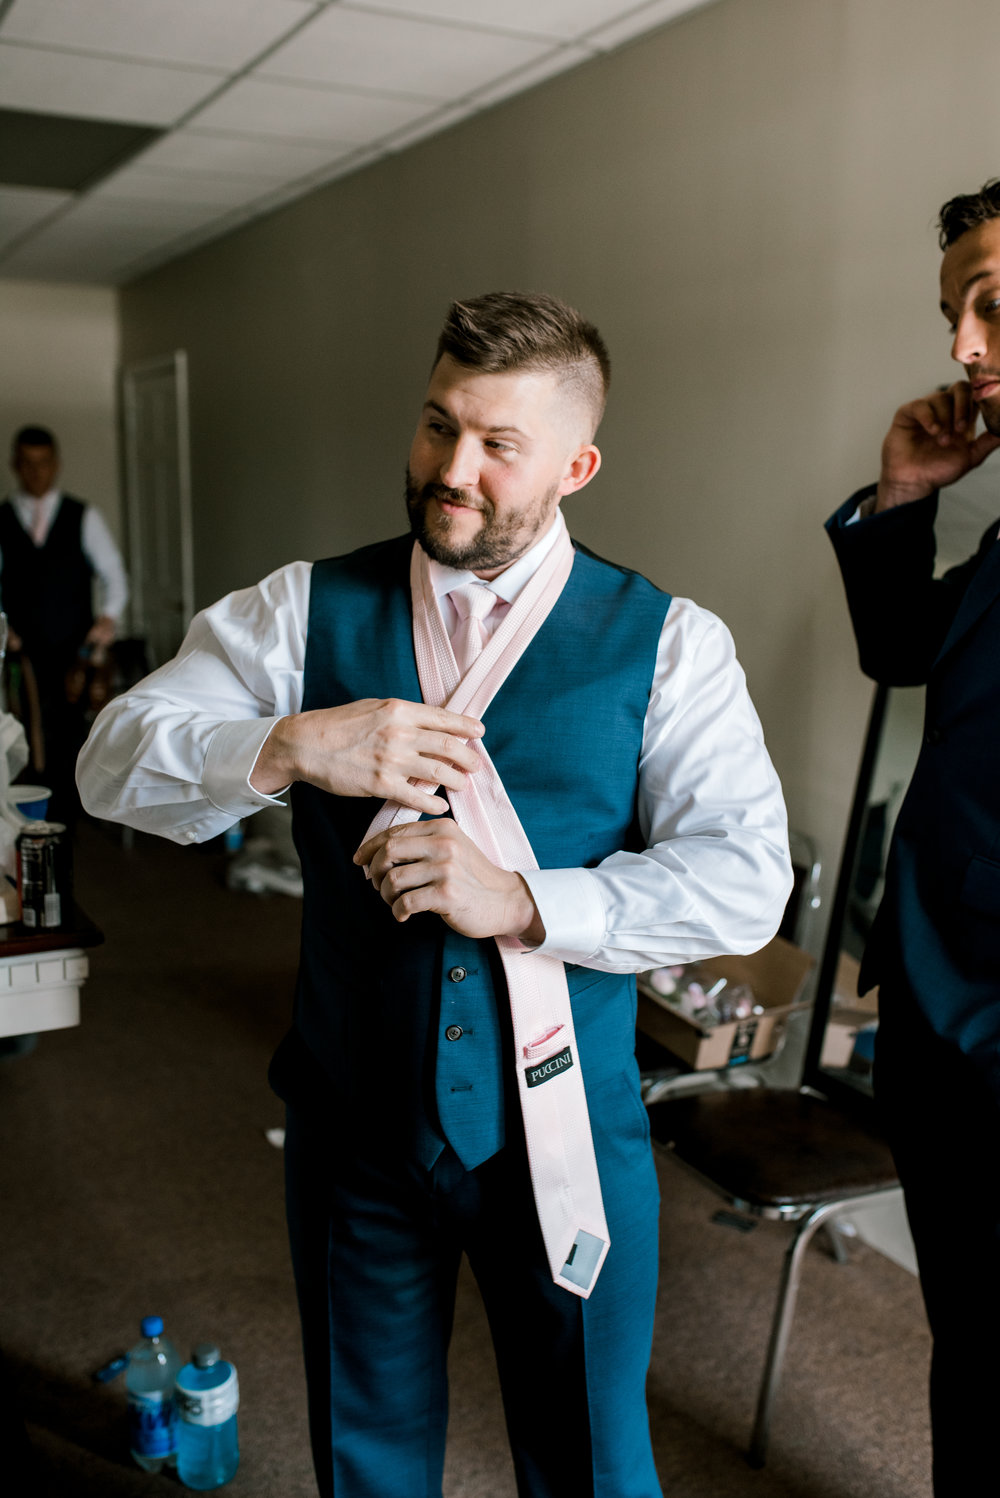 wedding-photographer-lexington-kentucky-groomsmen